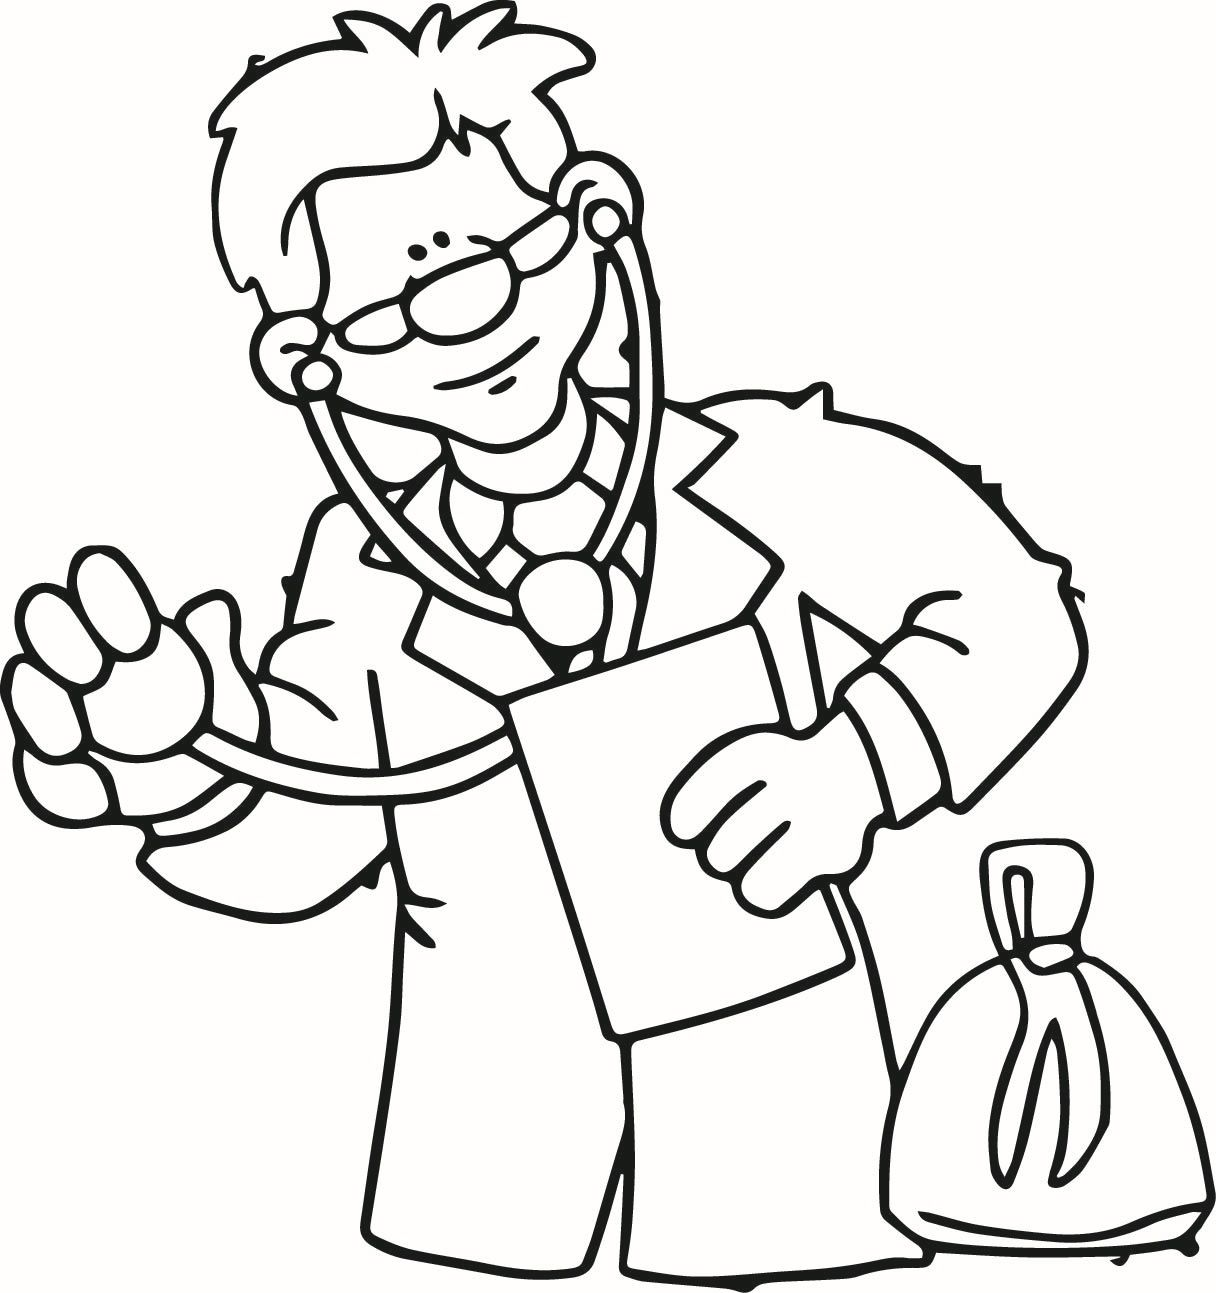 Coloring pages for doctors day - Coloring Pages Coloring Pages Doctor Colorings Press